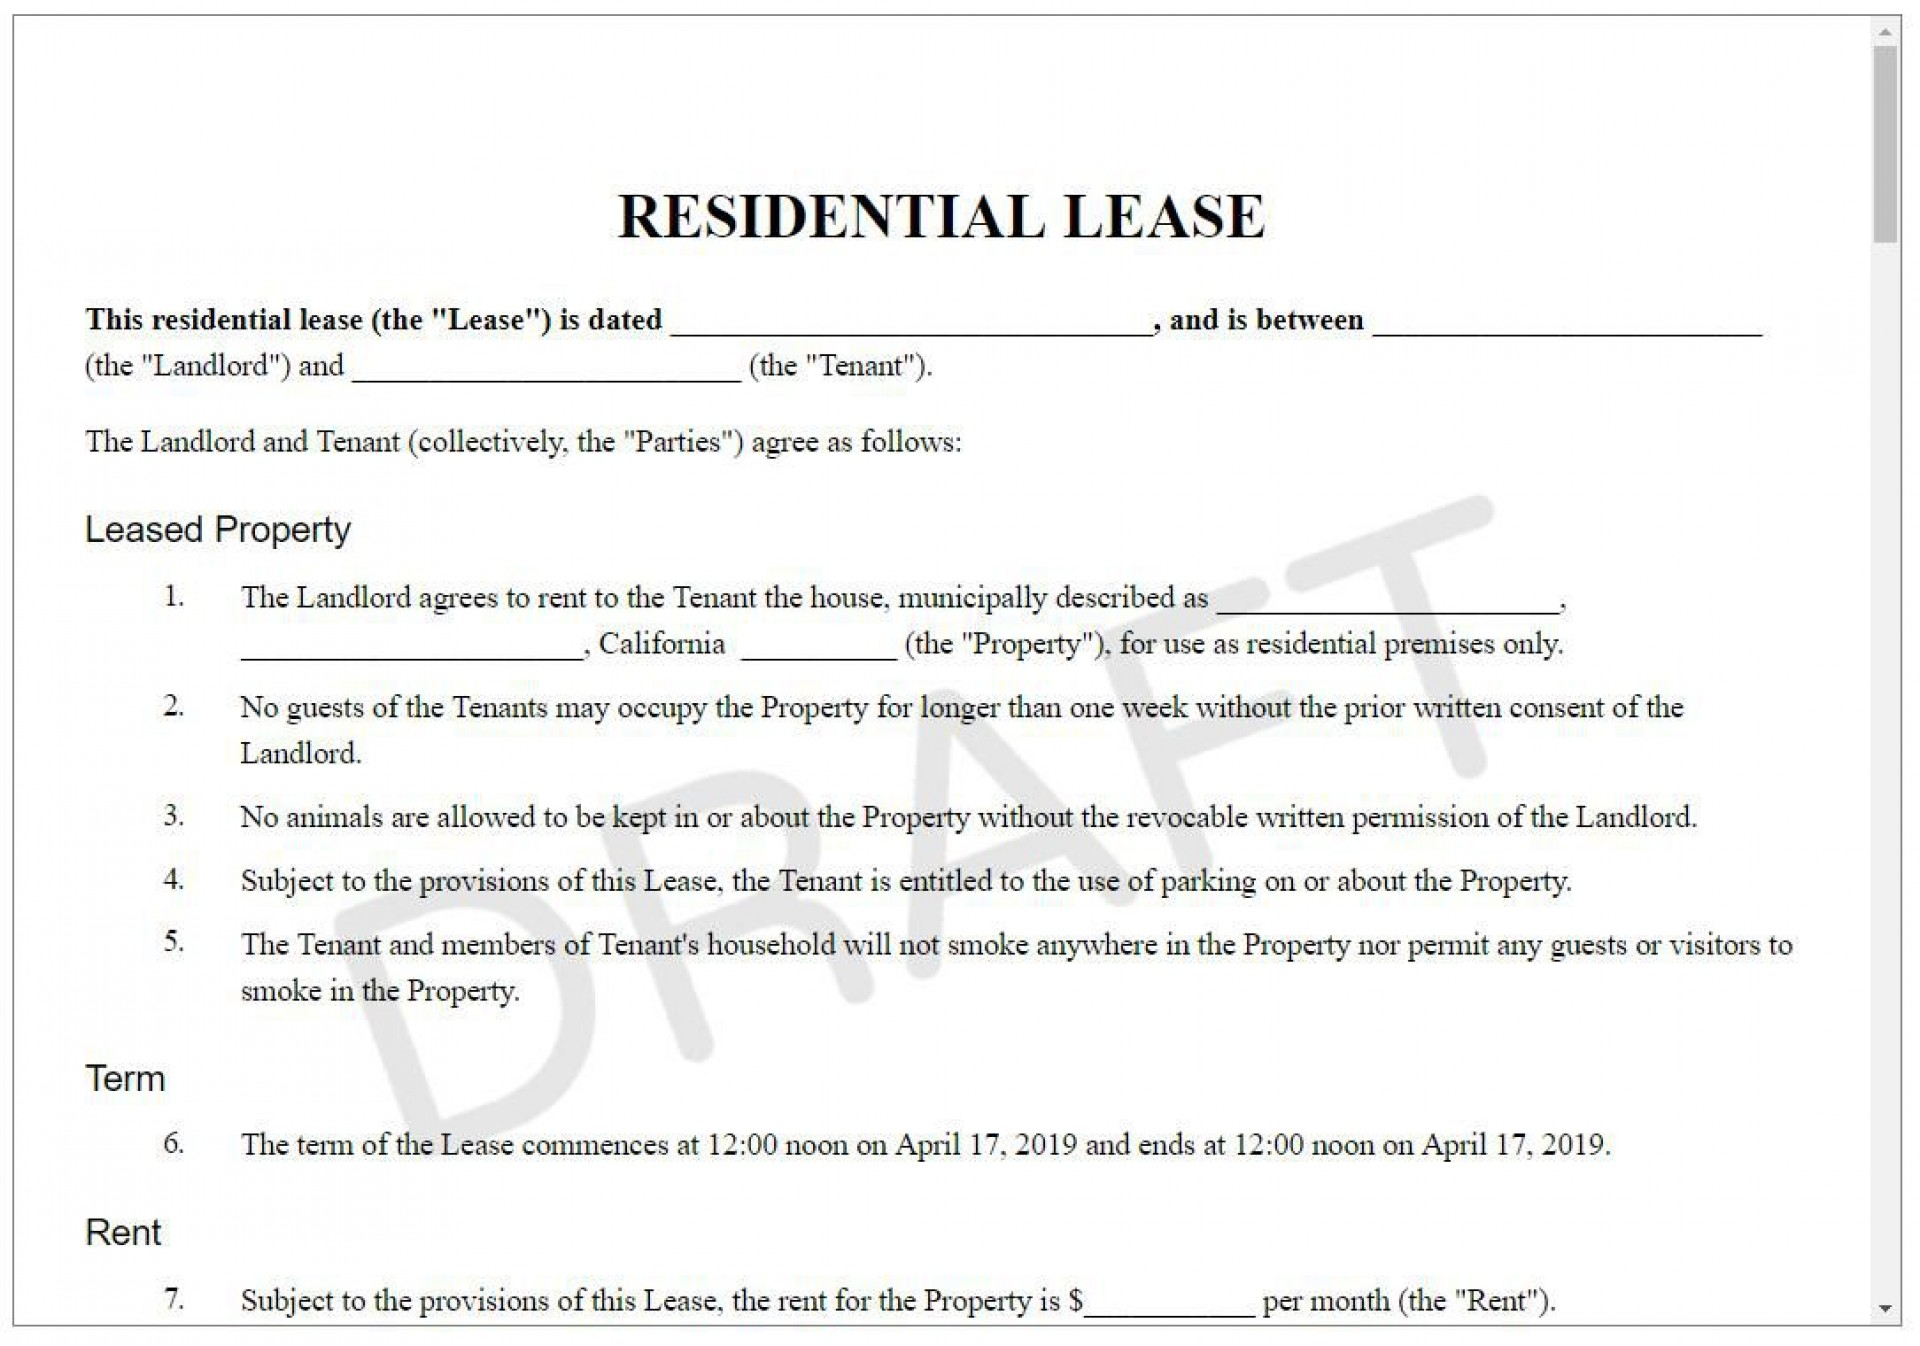 008 Wondrou Rental Lease Template Free Highest Quality  Agreement Sample Download Residential Printable1920